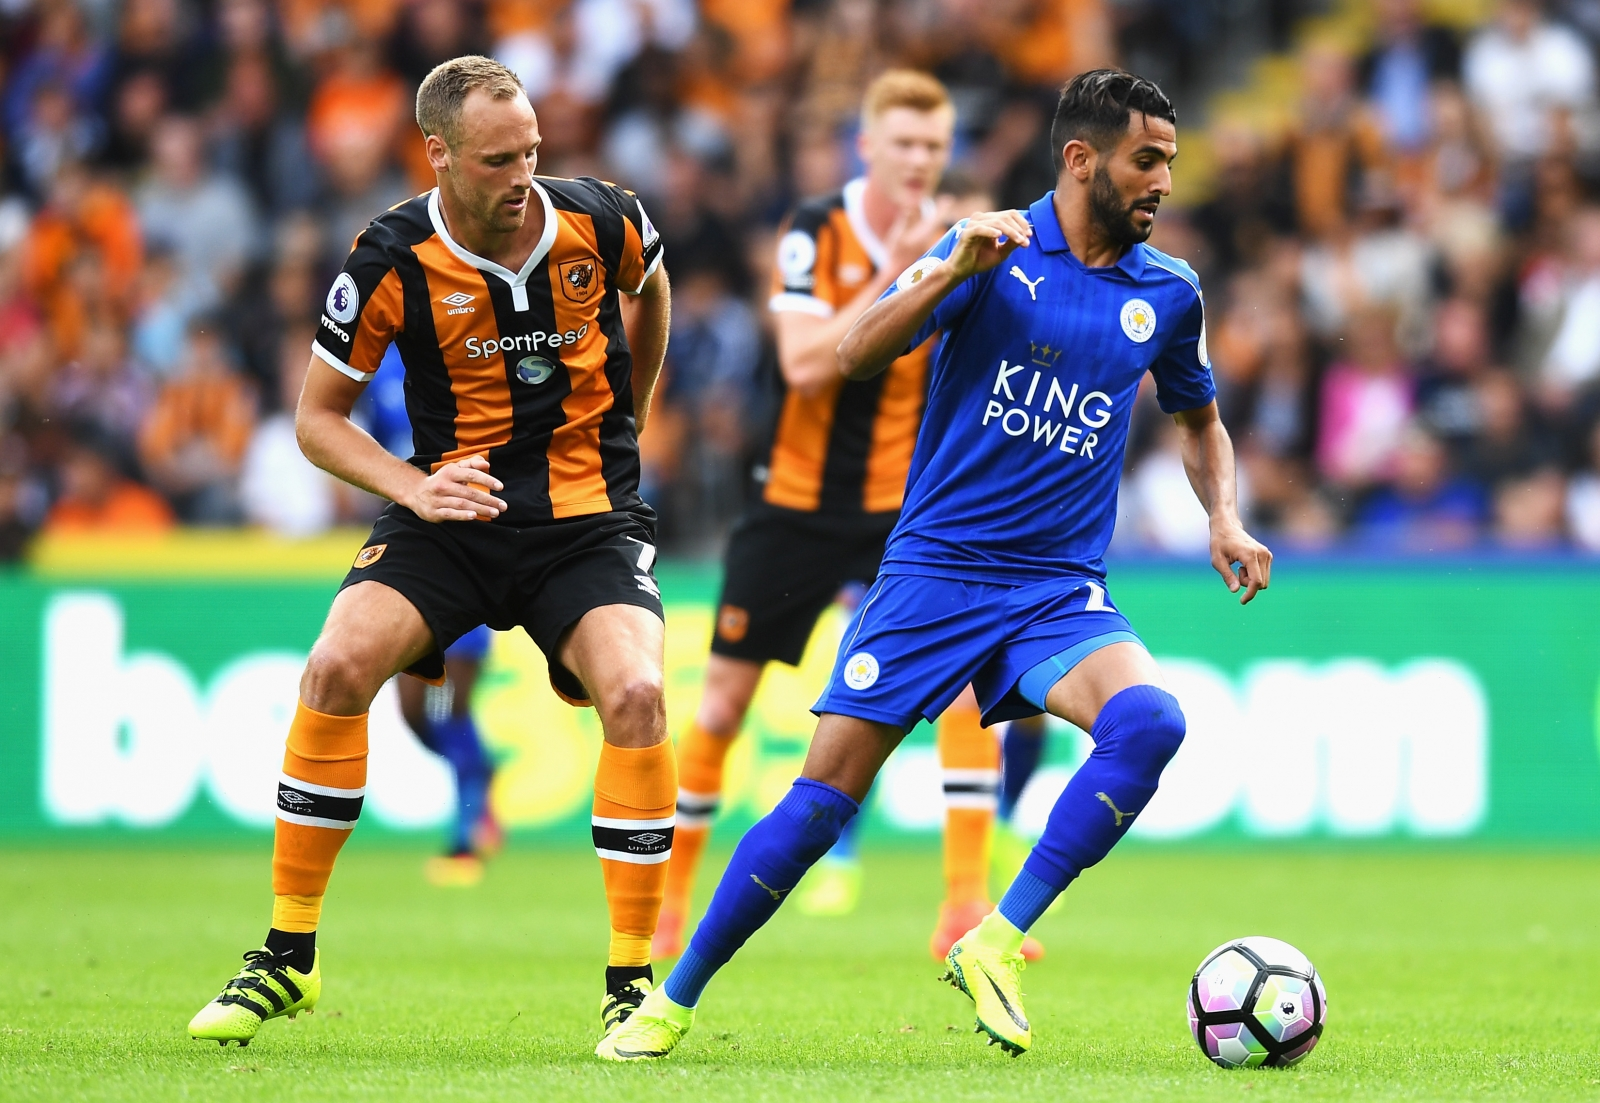 Leicester City v Arsenal preview: Robert Huth set for Foxes return